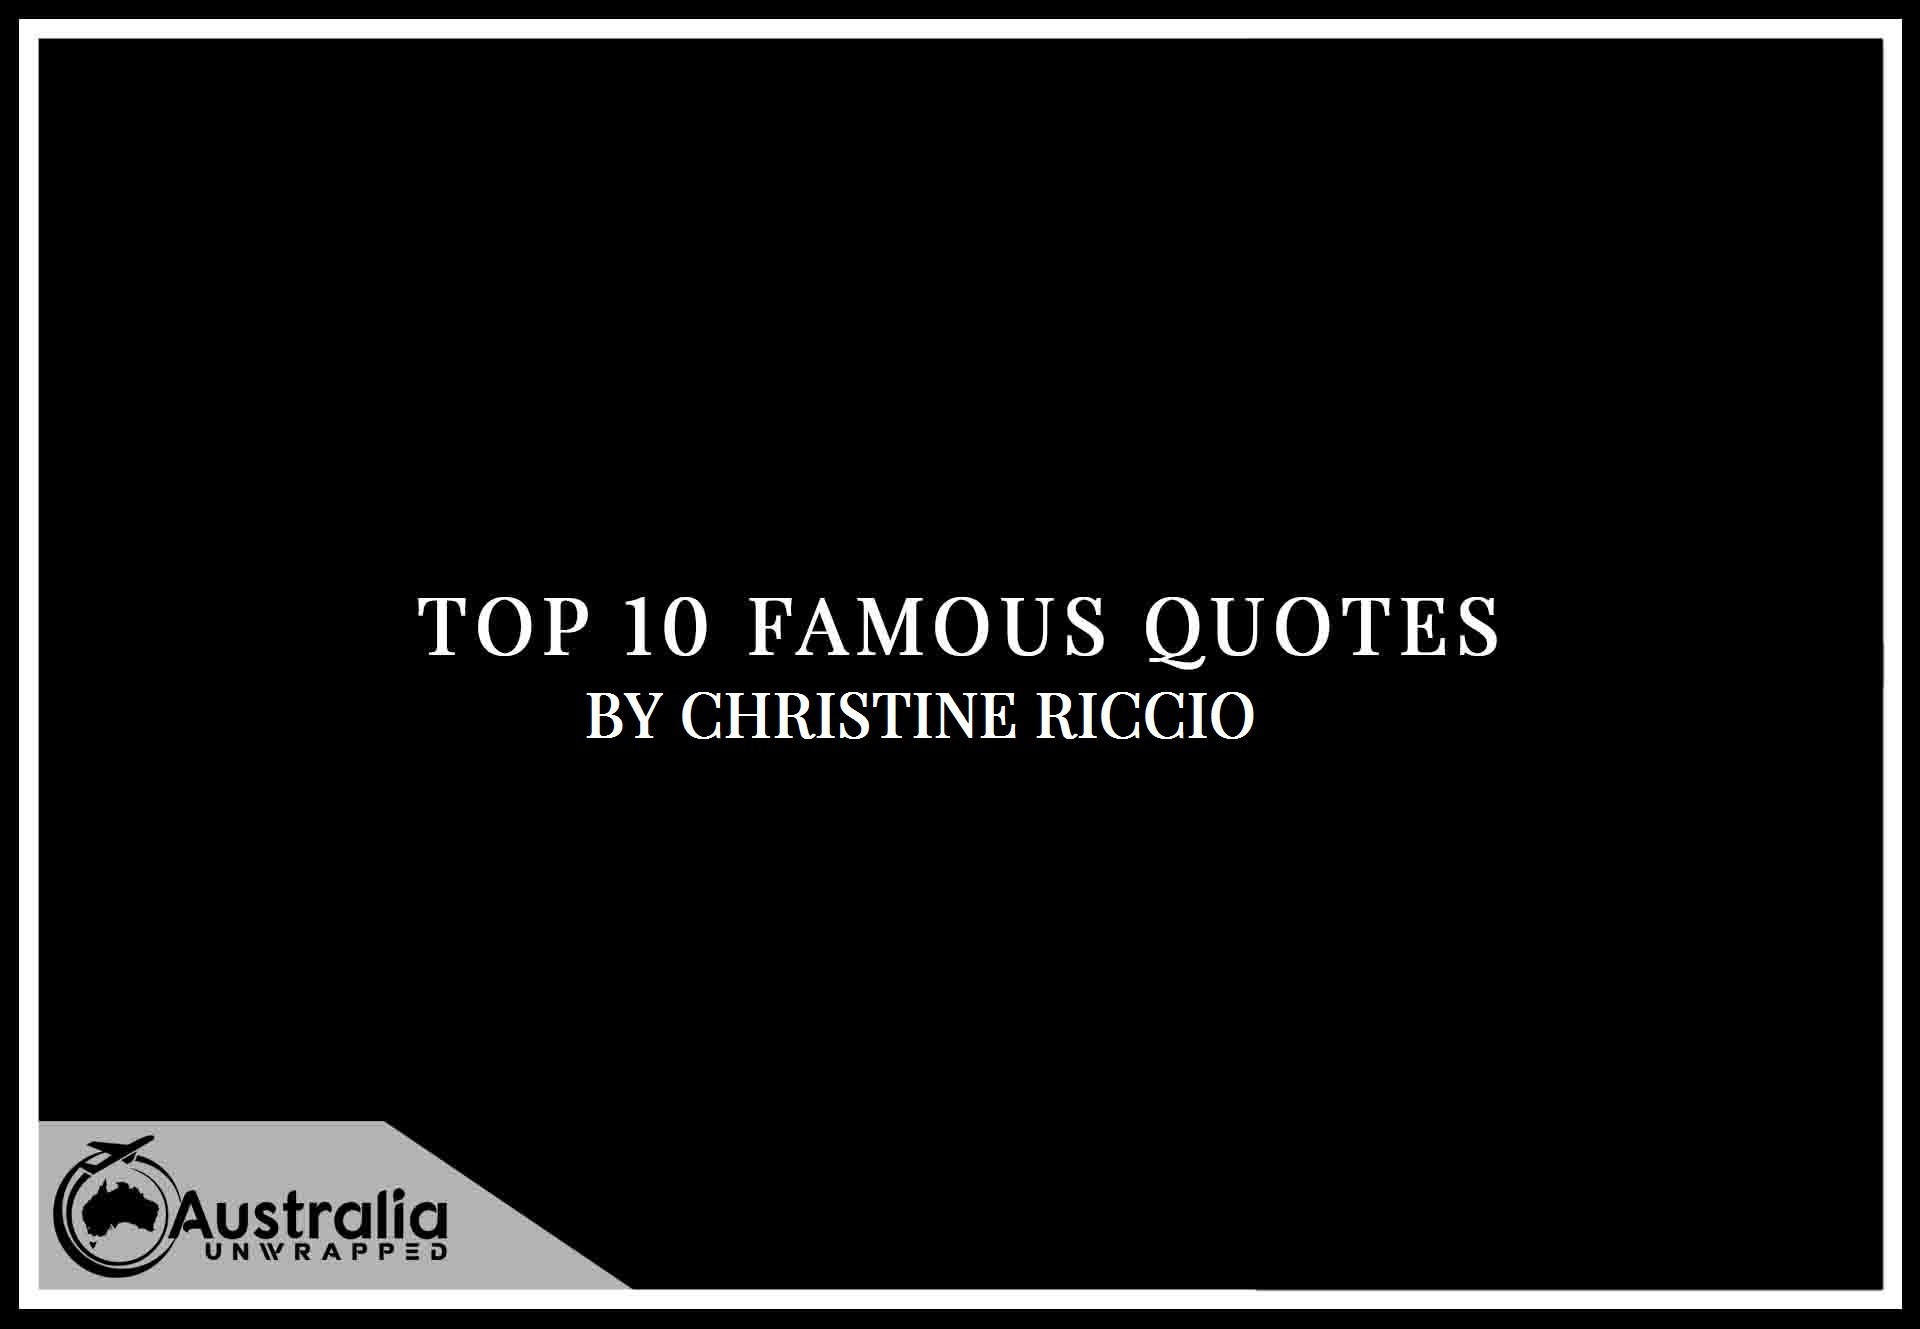 Christine Riccio's Top 10 Popular and Famous Quotes